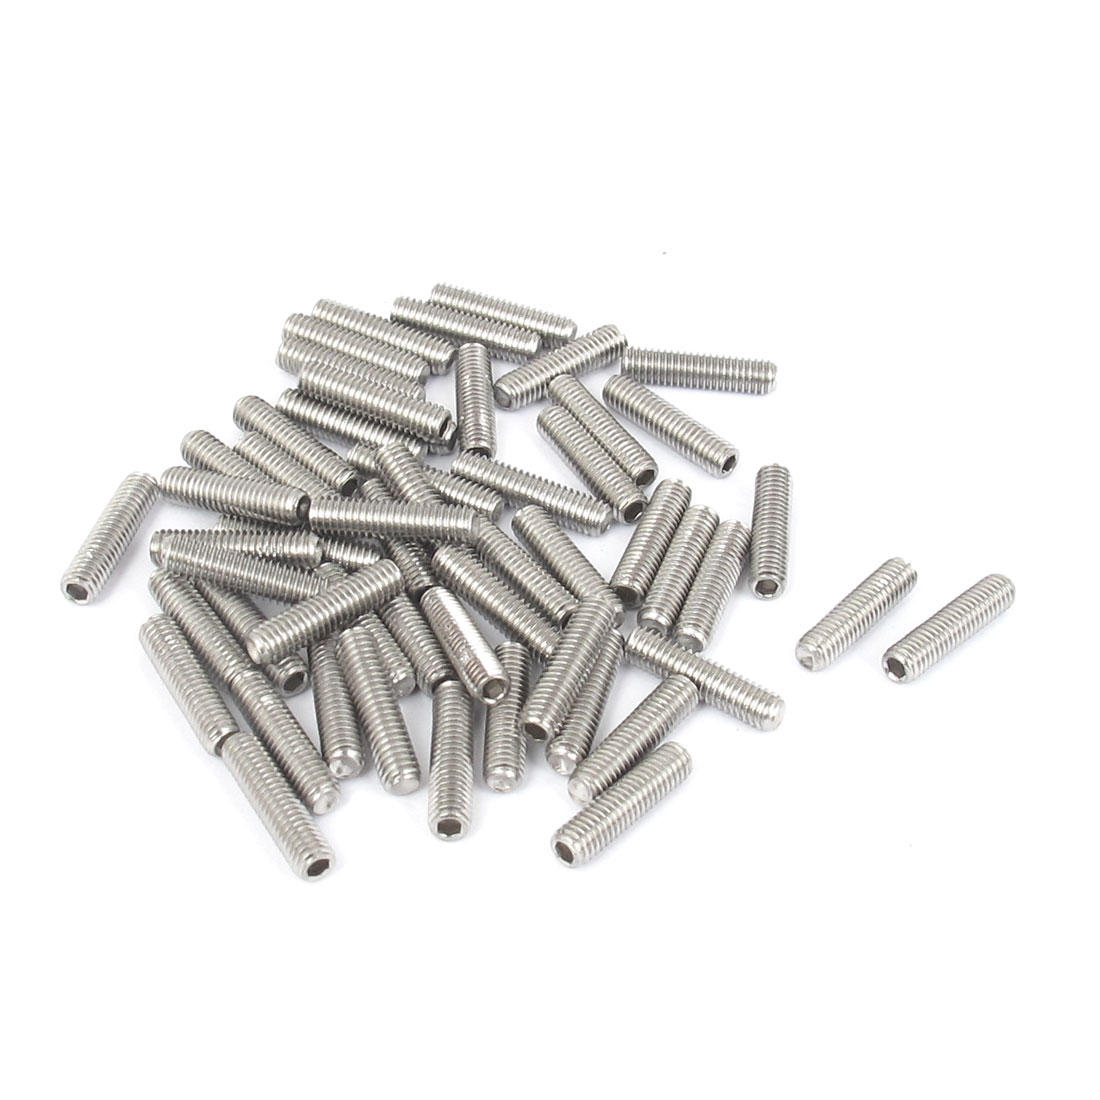 M3x12mm Stainless Steel Hex Socket Set Cap Point Grub Screws Silver Tone 50pcs